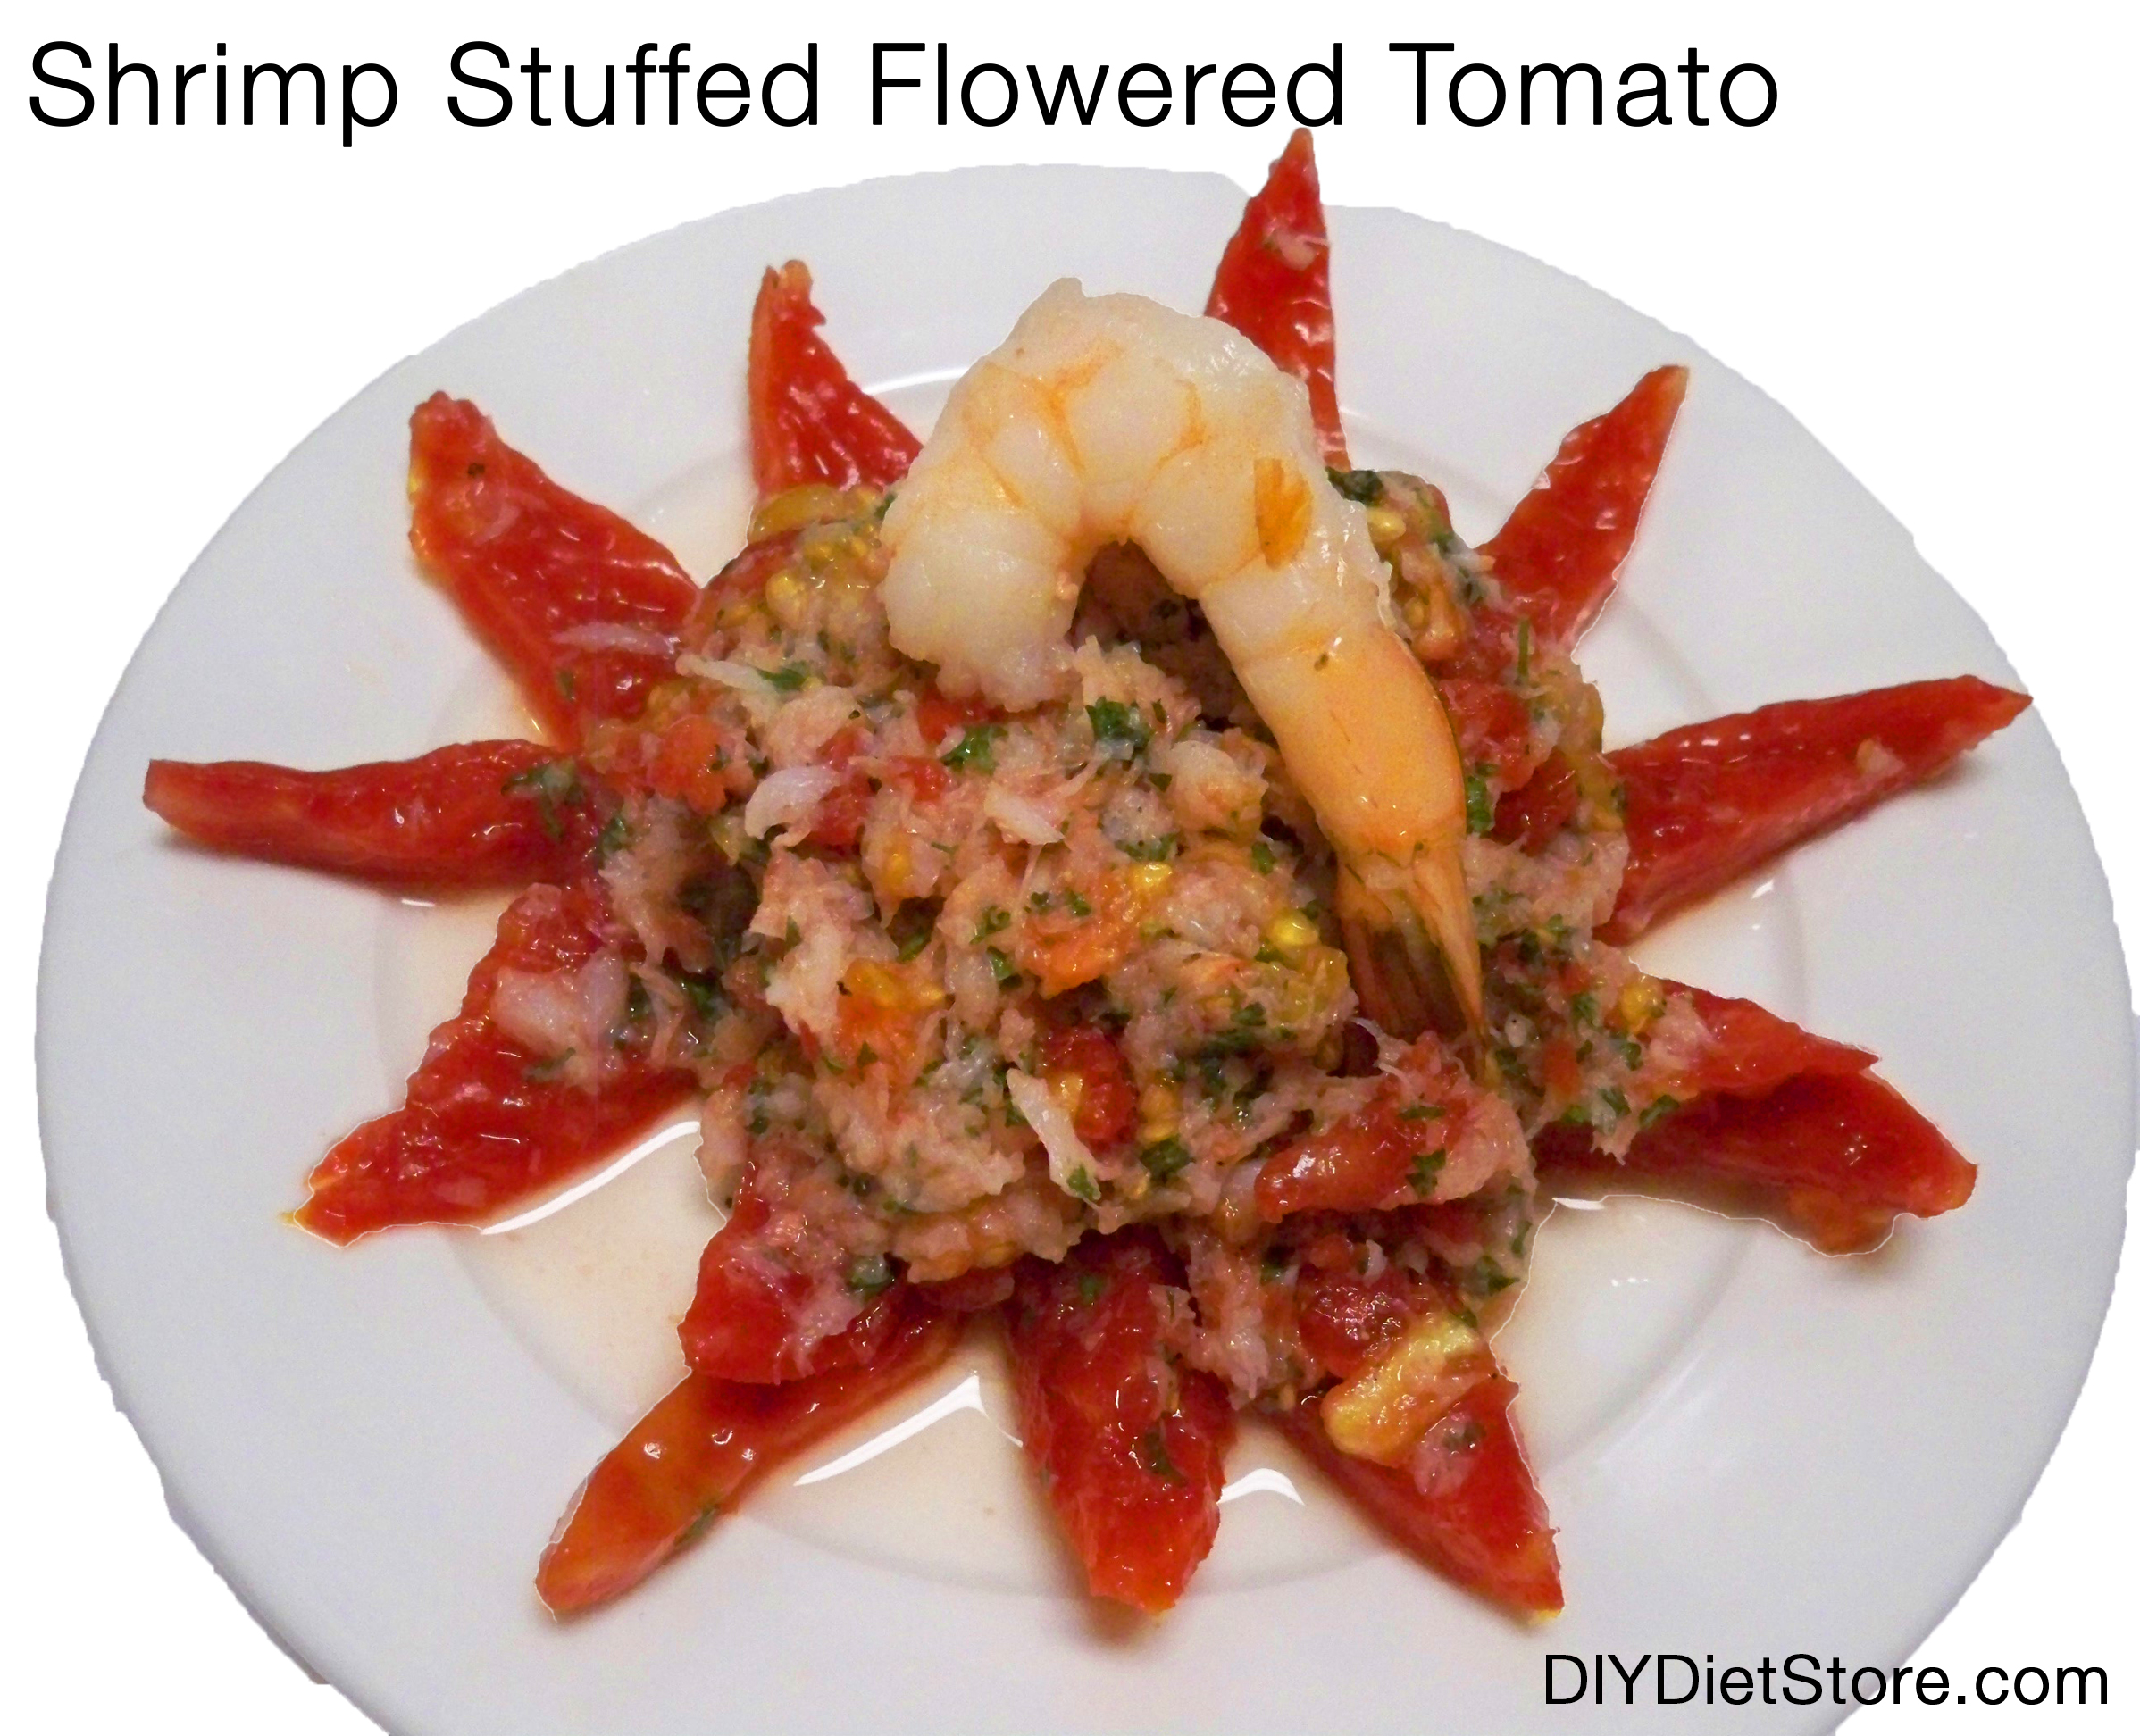 p2-shrimp-stuffed-flowered-tomato-dds.jpg